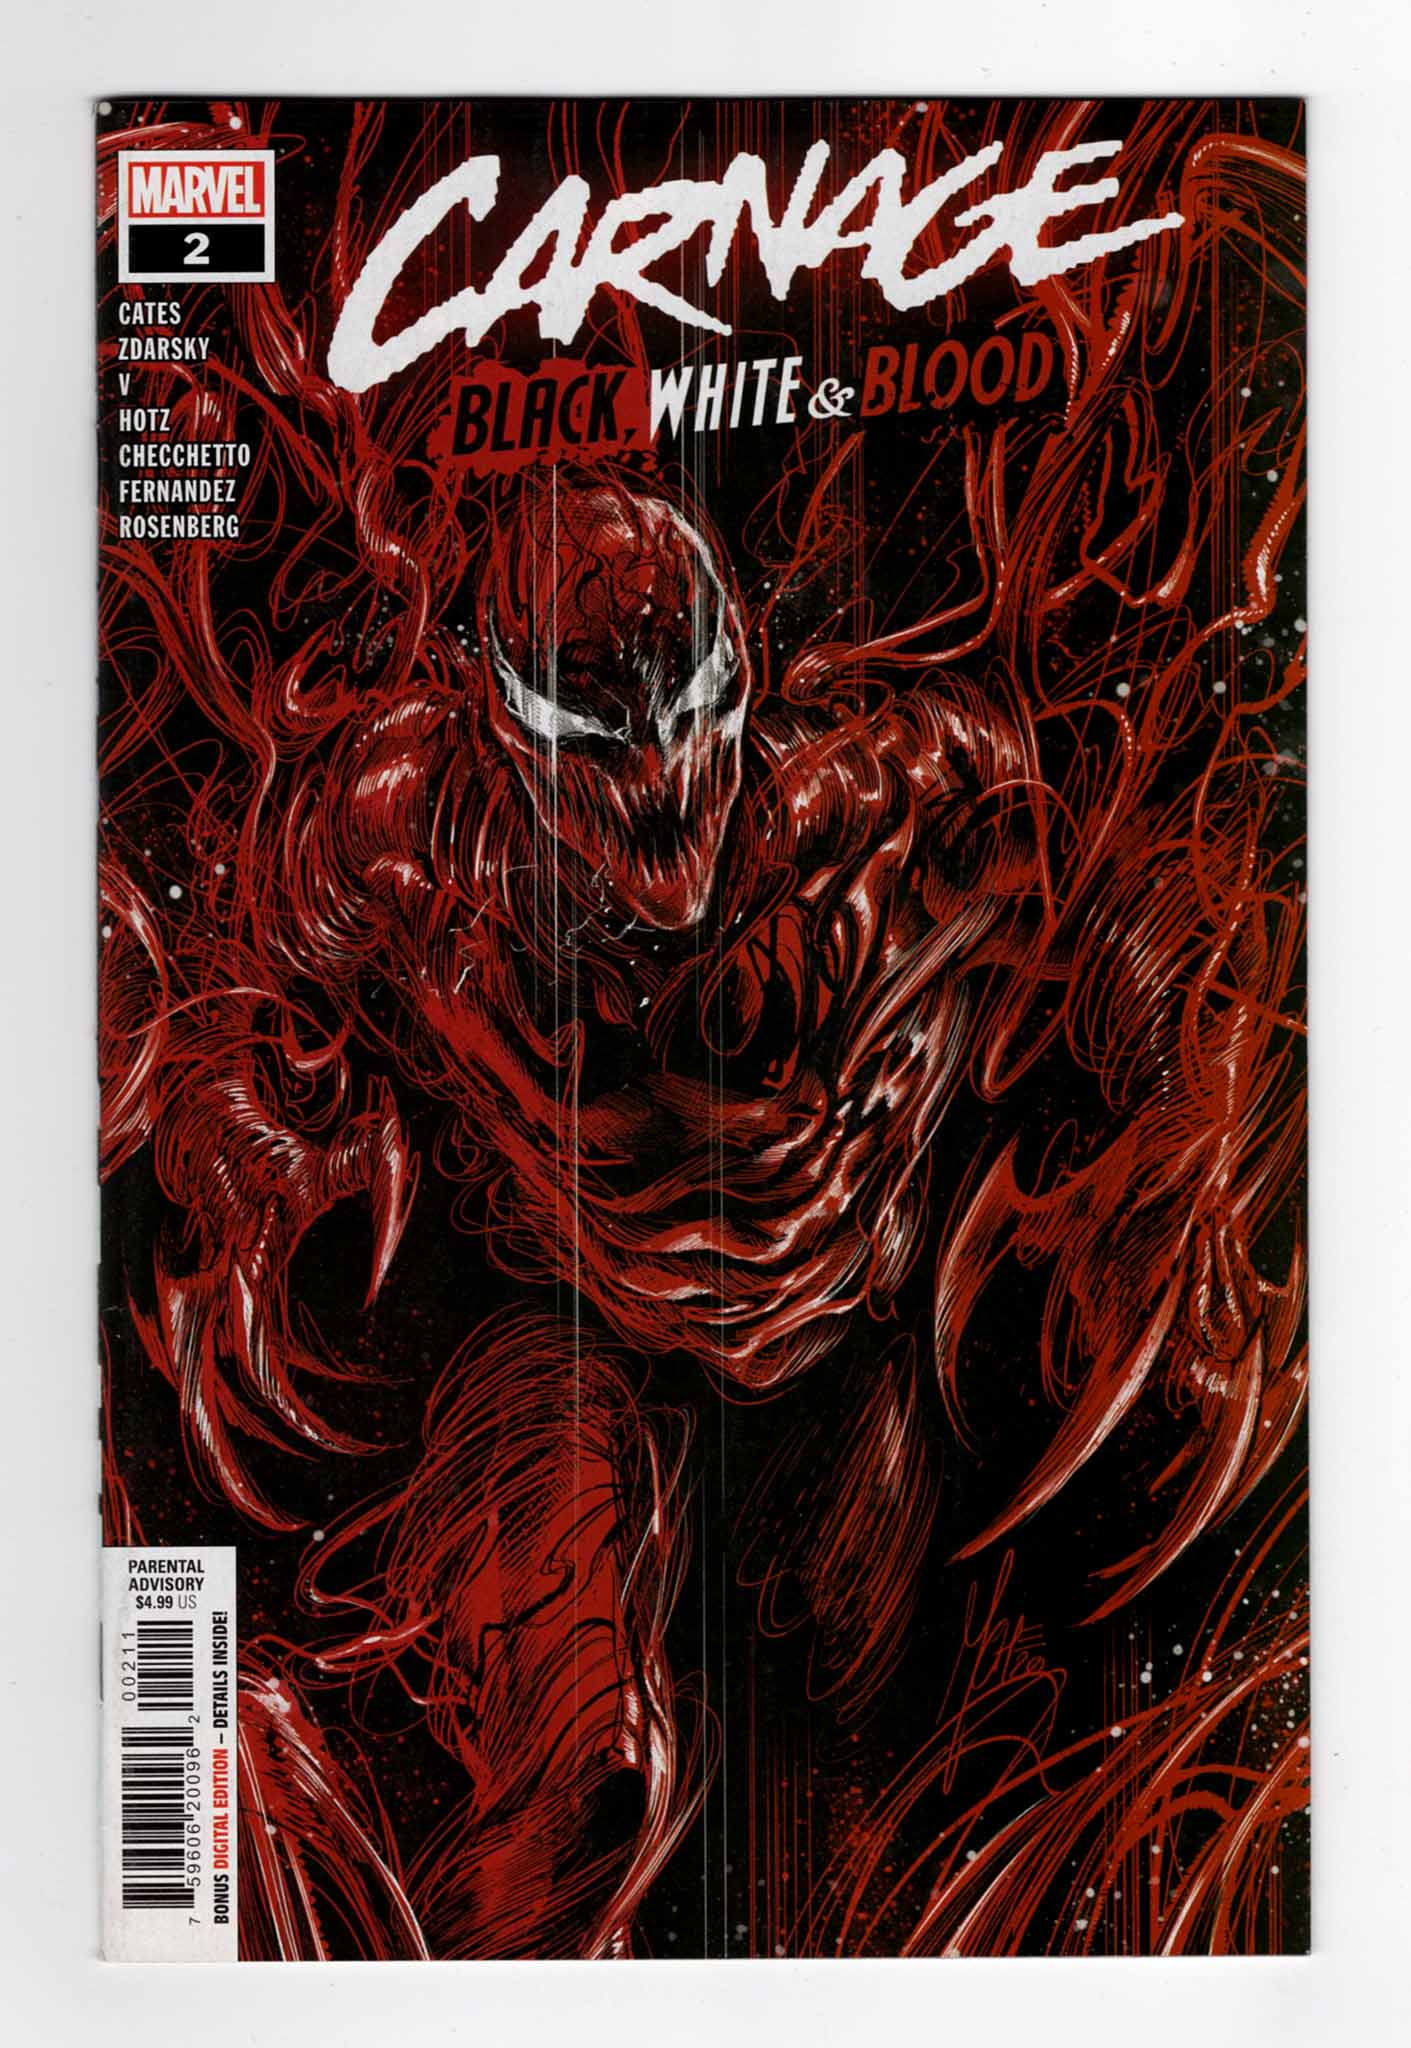 Carnage Black White and Blood 1—Front Cover | Venom Carnage Comic | Venom Let There Be Carnage